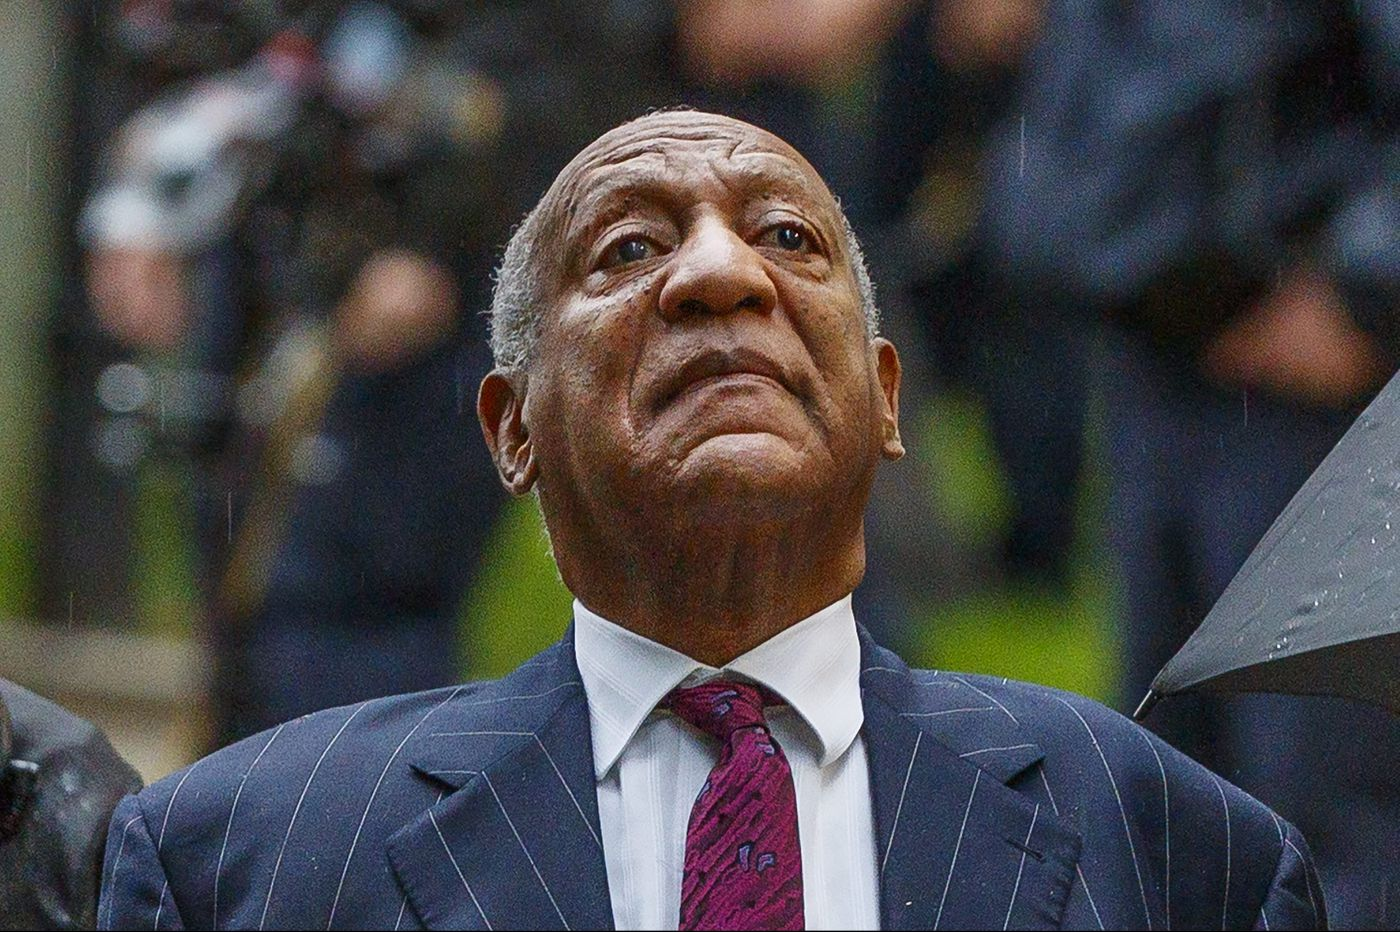 Bill Cosby sentencing: Judge to announce punishment at 1:30 p.m.